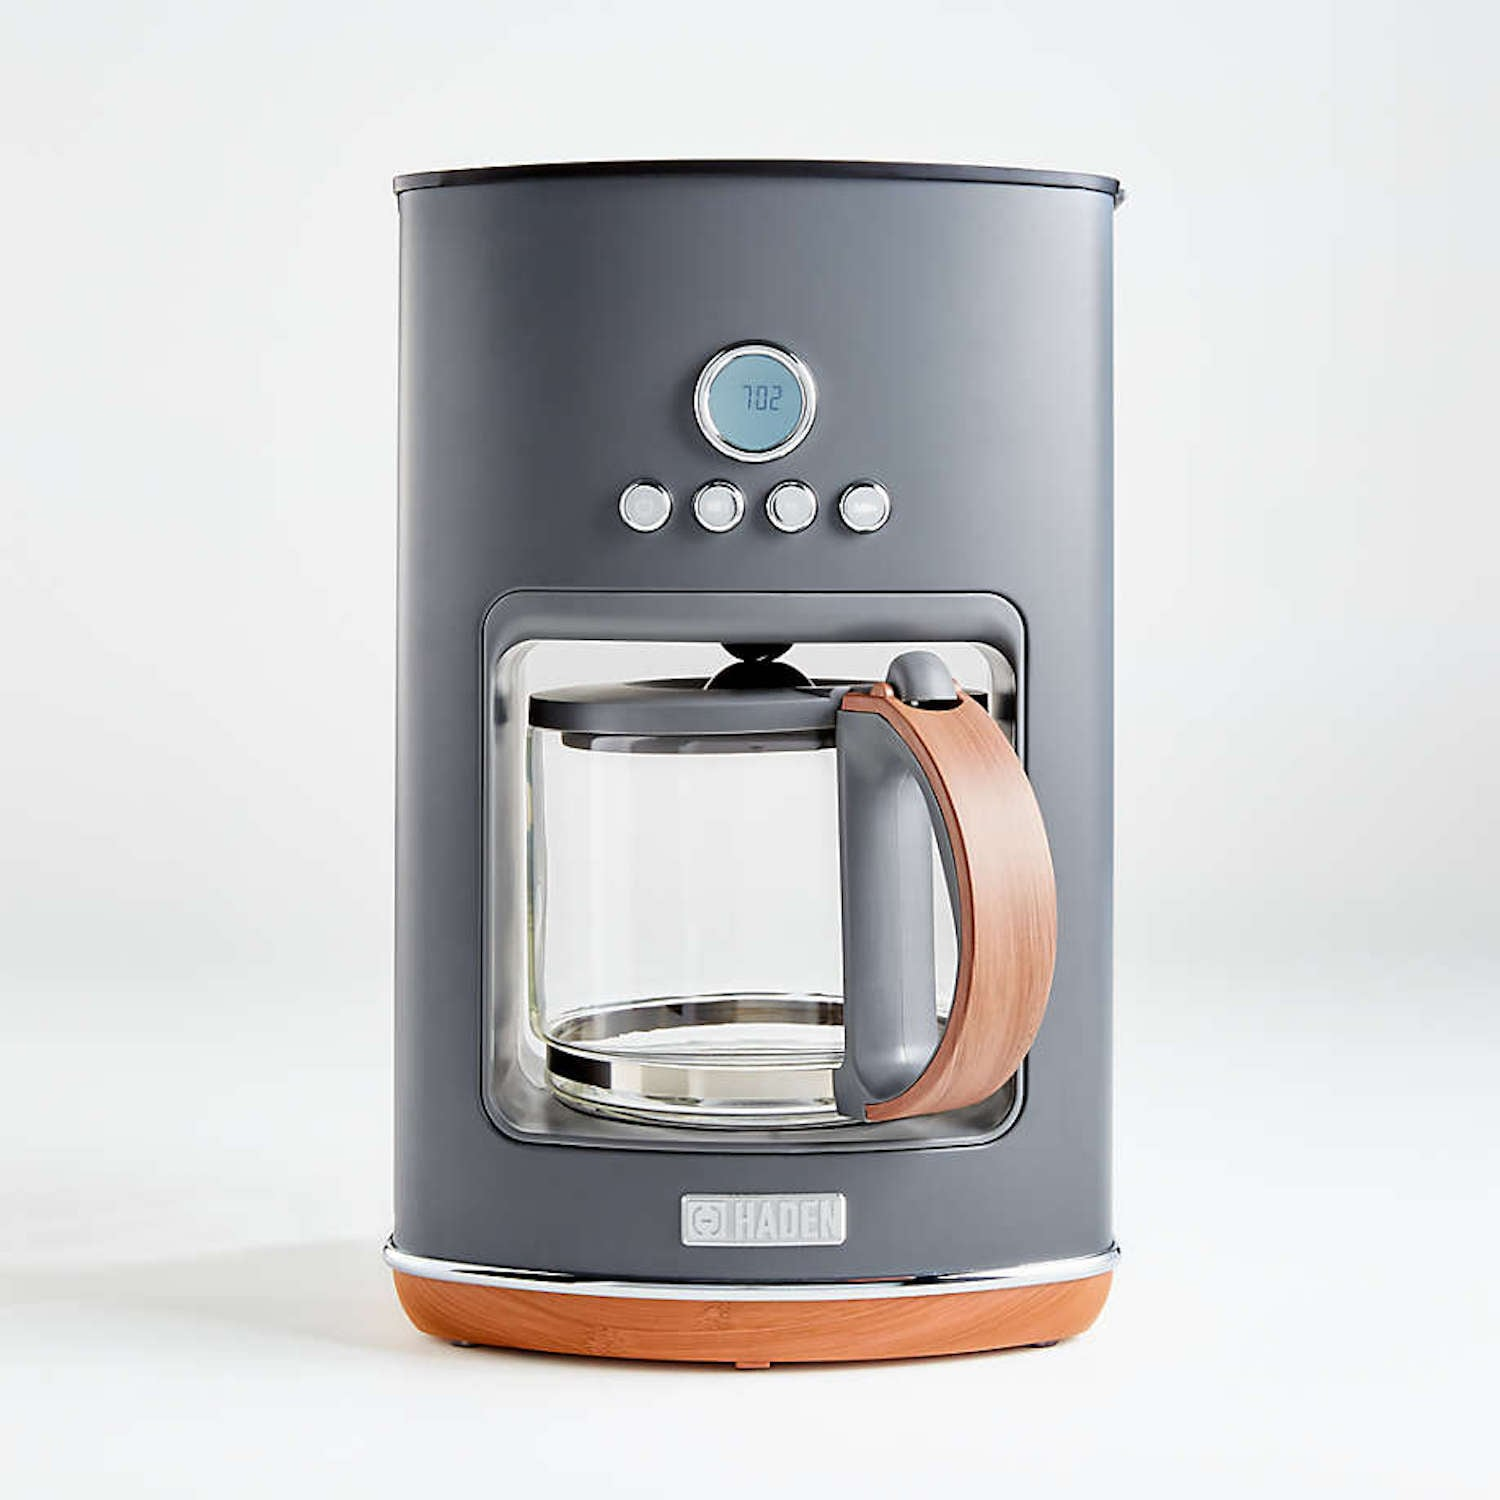 Best Stylish Coffee Makers That Aren't Ugly | POPSUGAR Home